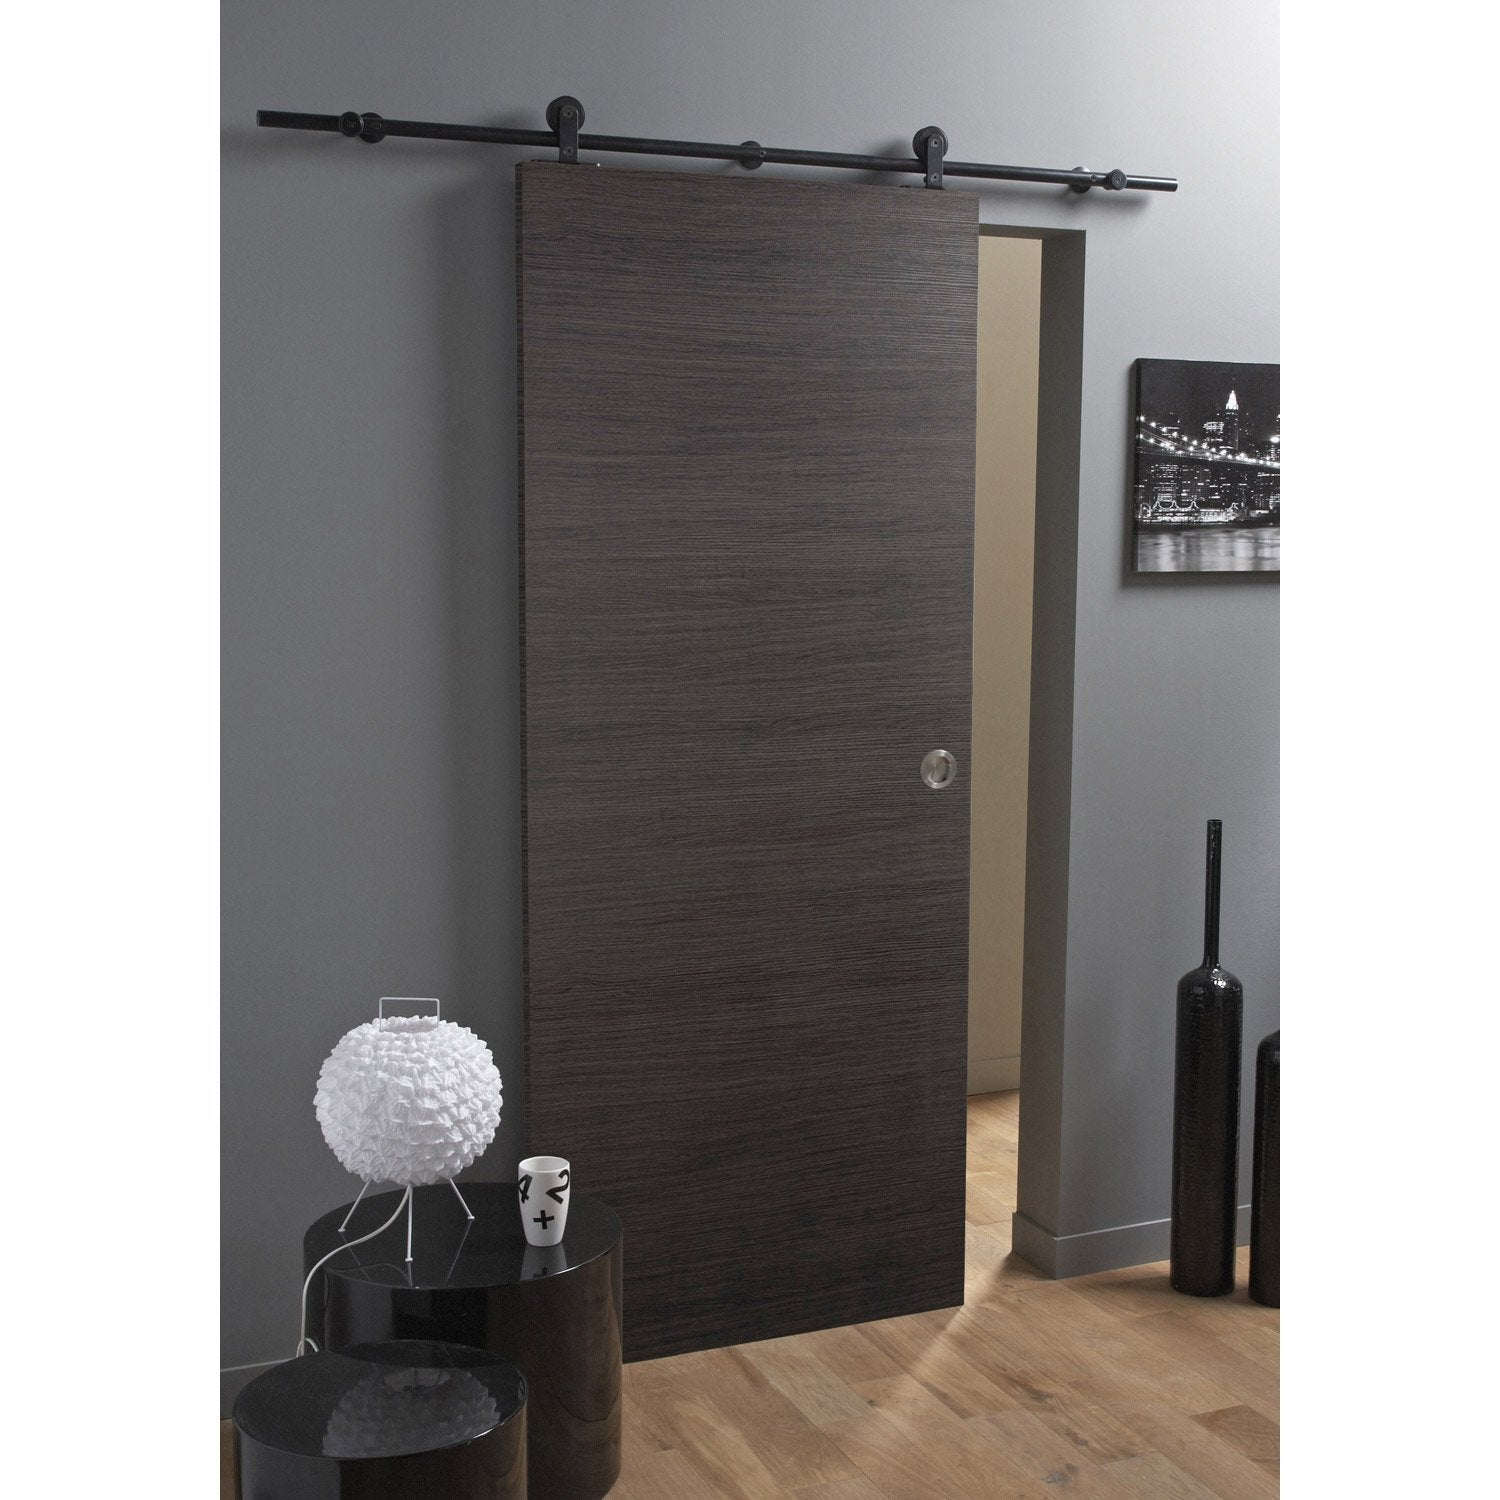 ensemble porte coulissante londres mdf rev tu avec le rail bol ro noir aluminium leroy merlin. Black Bedroom Furniture Sets. Home Design Ideas